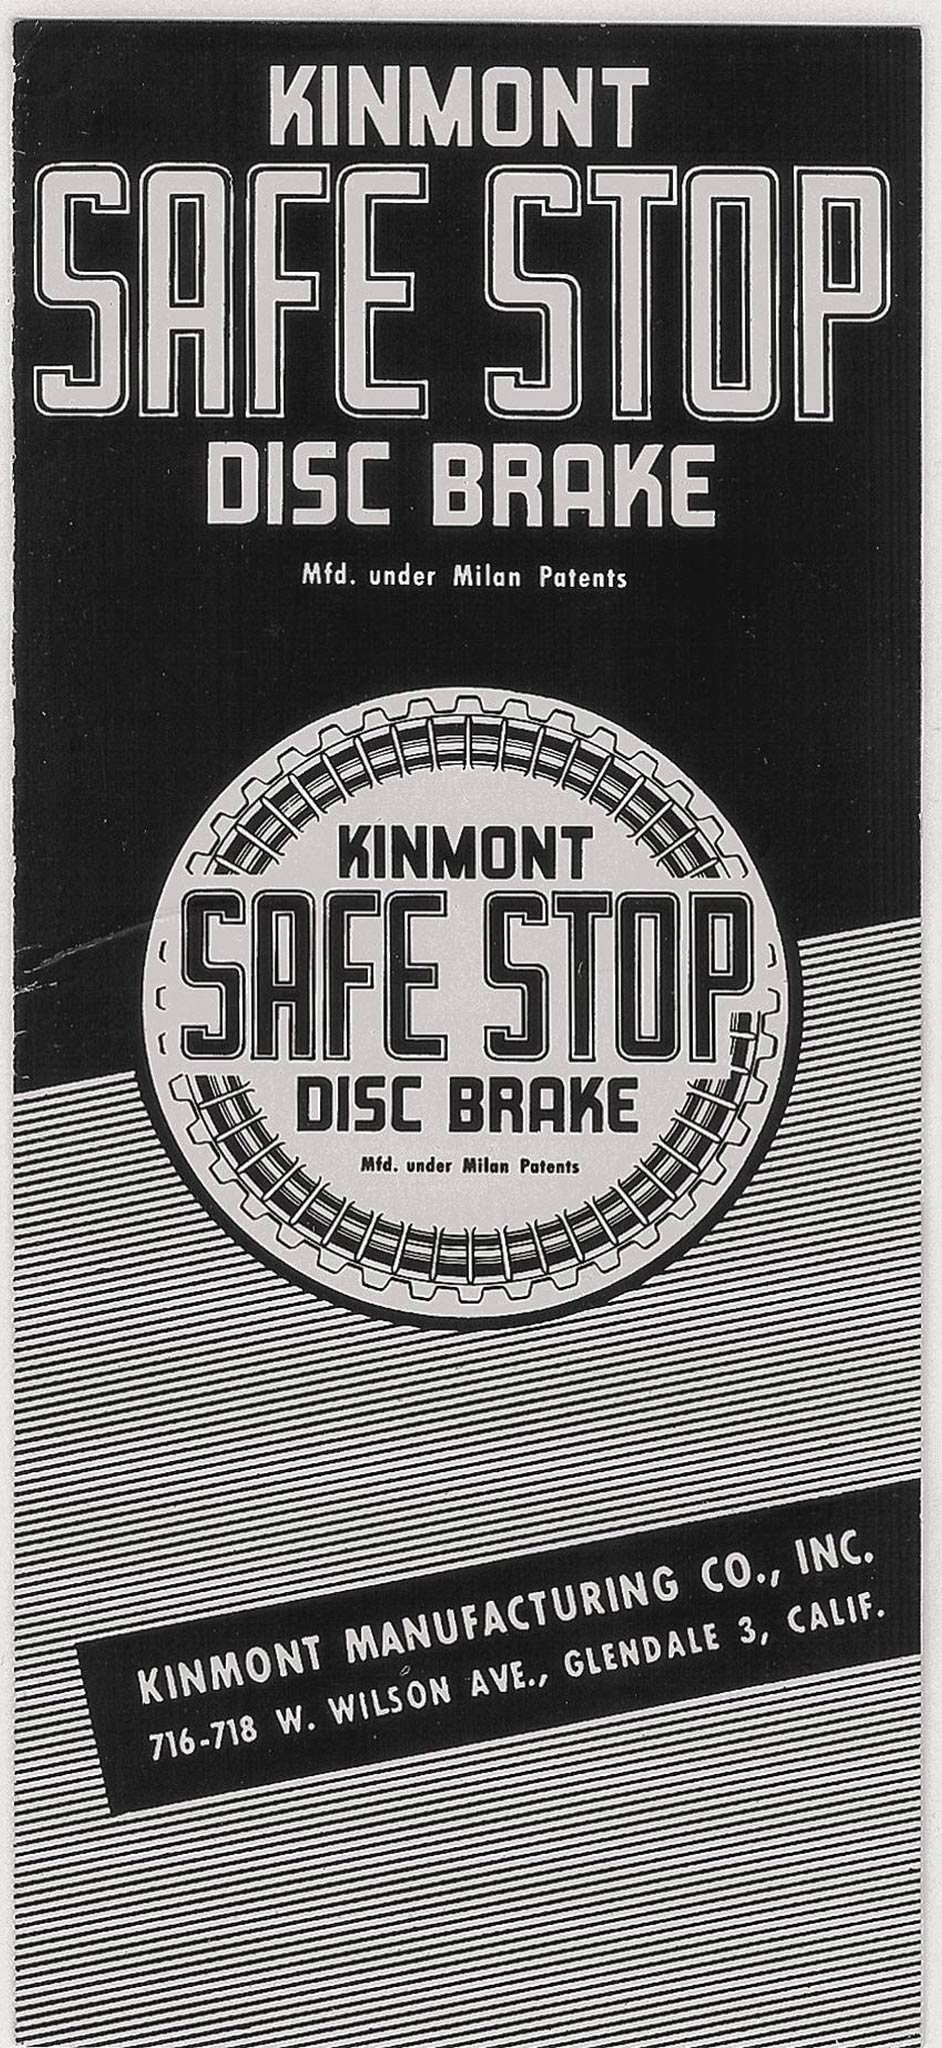 Kinmont advertised its brakes with this little brochure, stressing extensive testing, police and government approval, racing successes, quality materials, and construction—all to no avail. It appears that few companies and authorities bought them for taxi and fleet use. Hot rodders purchased most of the 325 or so complete sets made, mainly from Bell Auto Parts, in Bell, CA, arguably as much for their finny good looks as their proven stopping power.